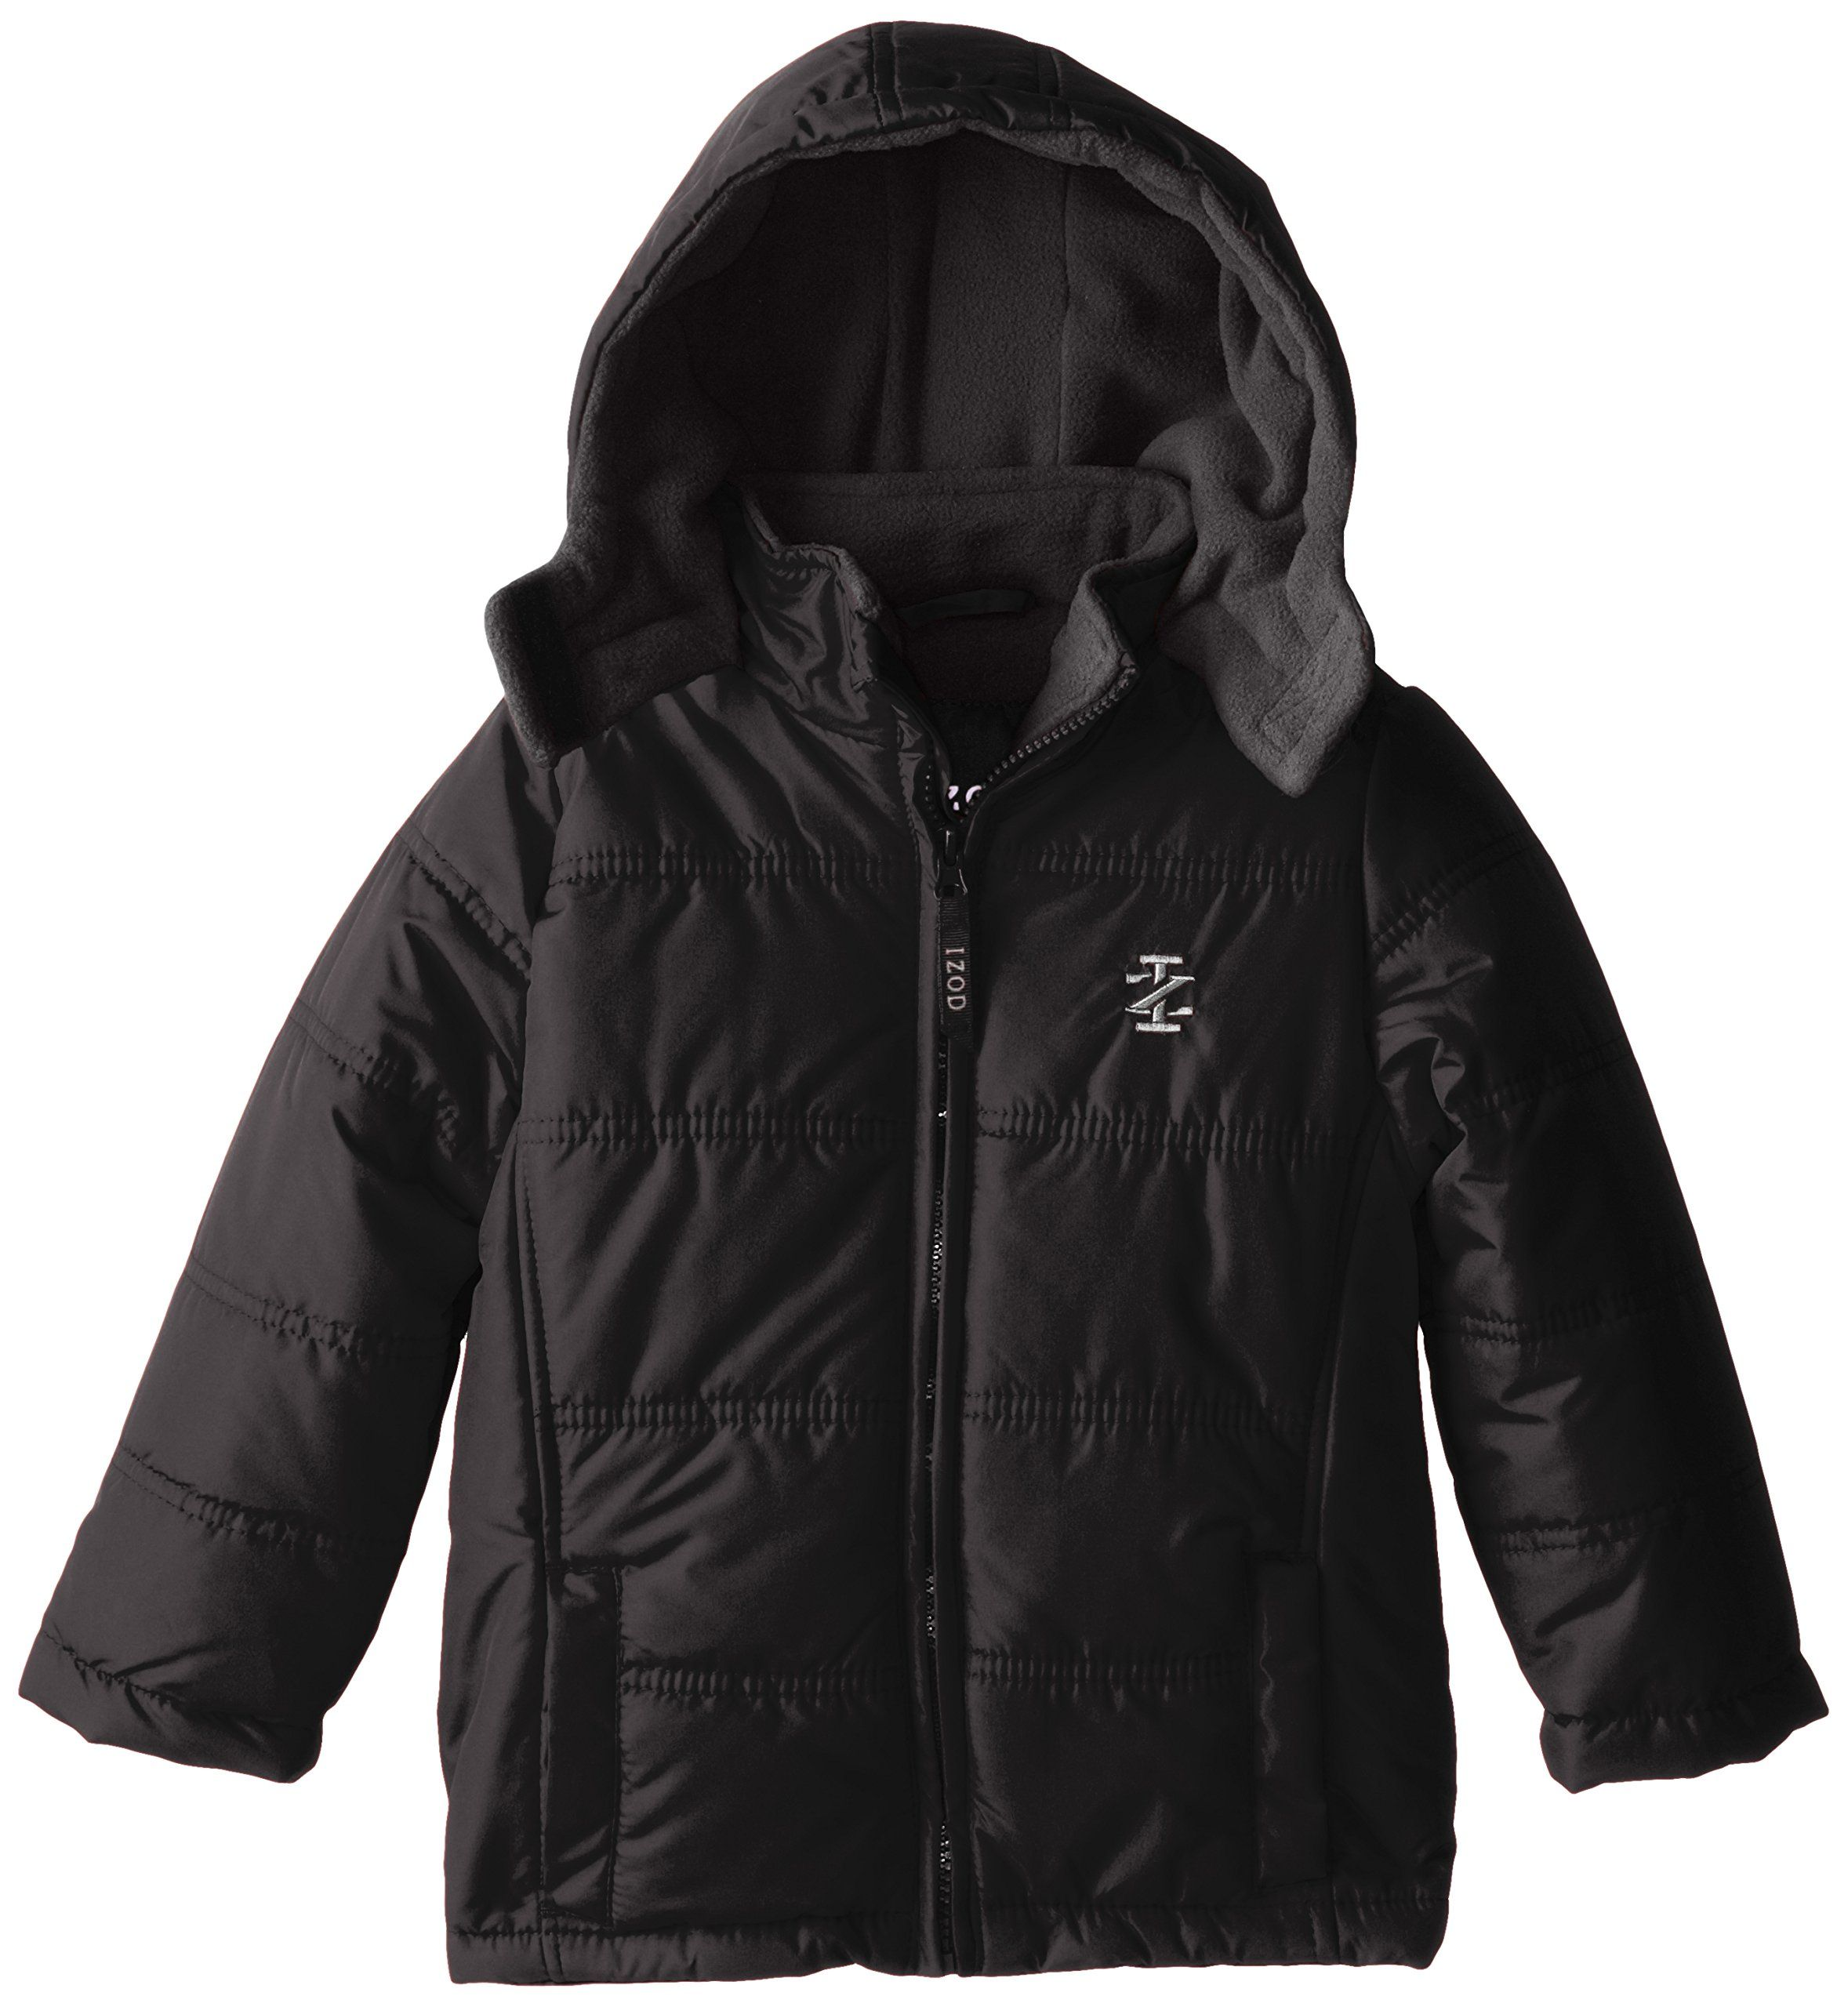 Izod Little Boys Hooded Puffer Coat With Contrast Fleece Lining Black Charcoal 5 Izod Branding On All Hardware And Zipper Puffer Coat Black Charcoal Puffer [ 2560 x 2357 Pixel ]